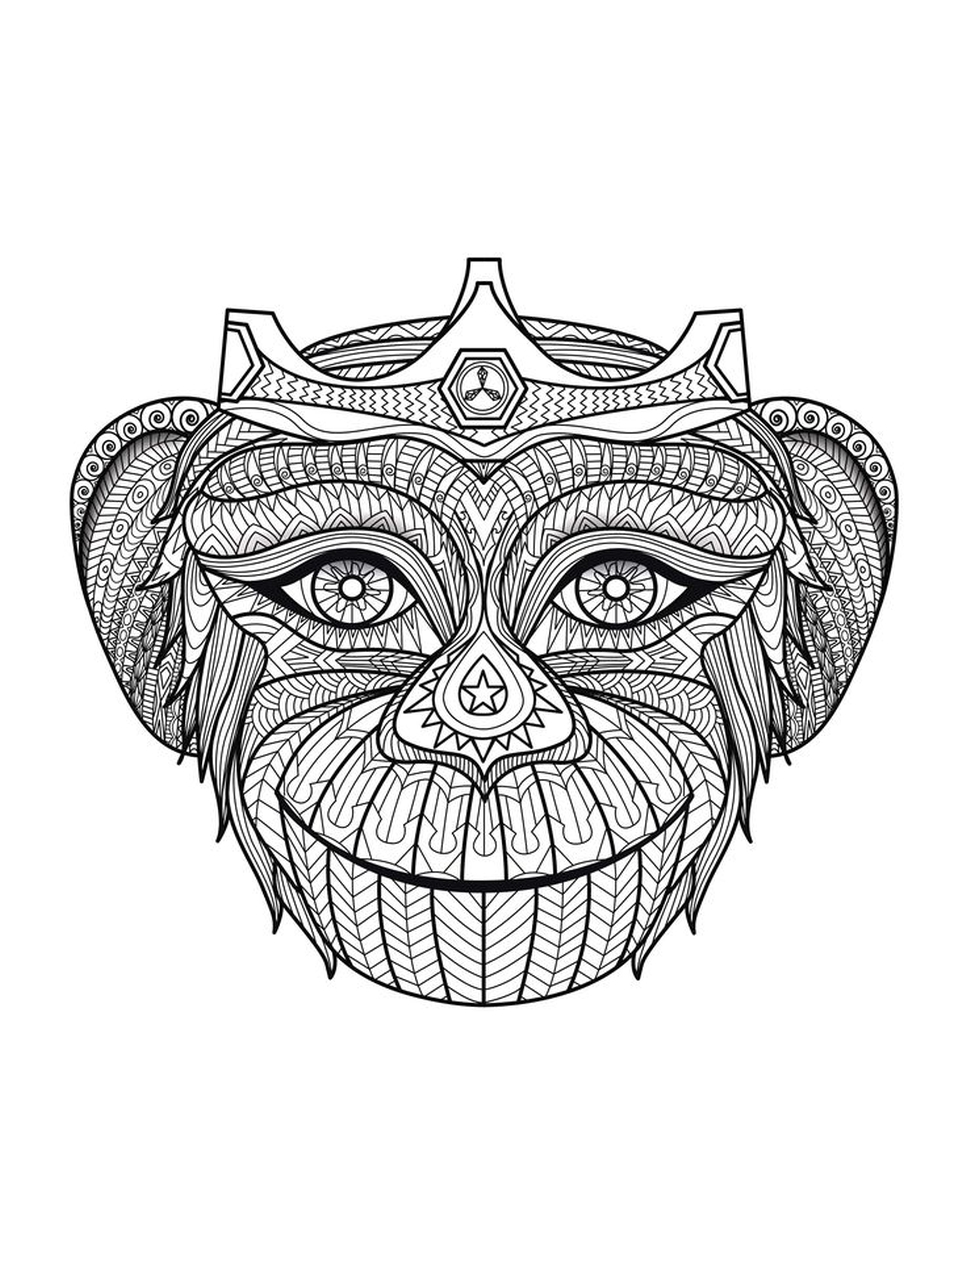 Get This Monkey Coloring Pages for Adults - 067201